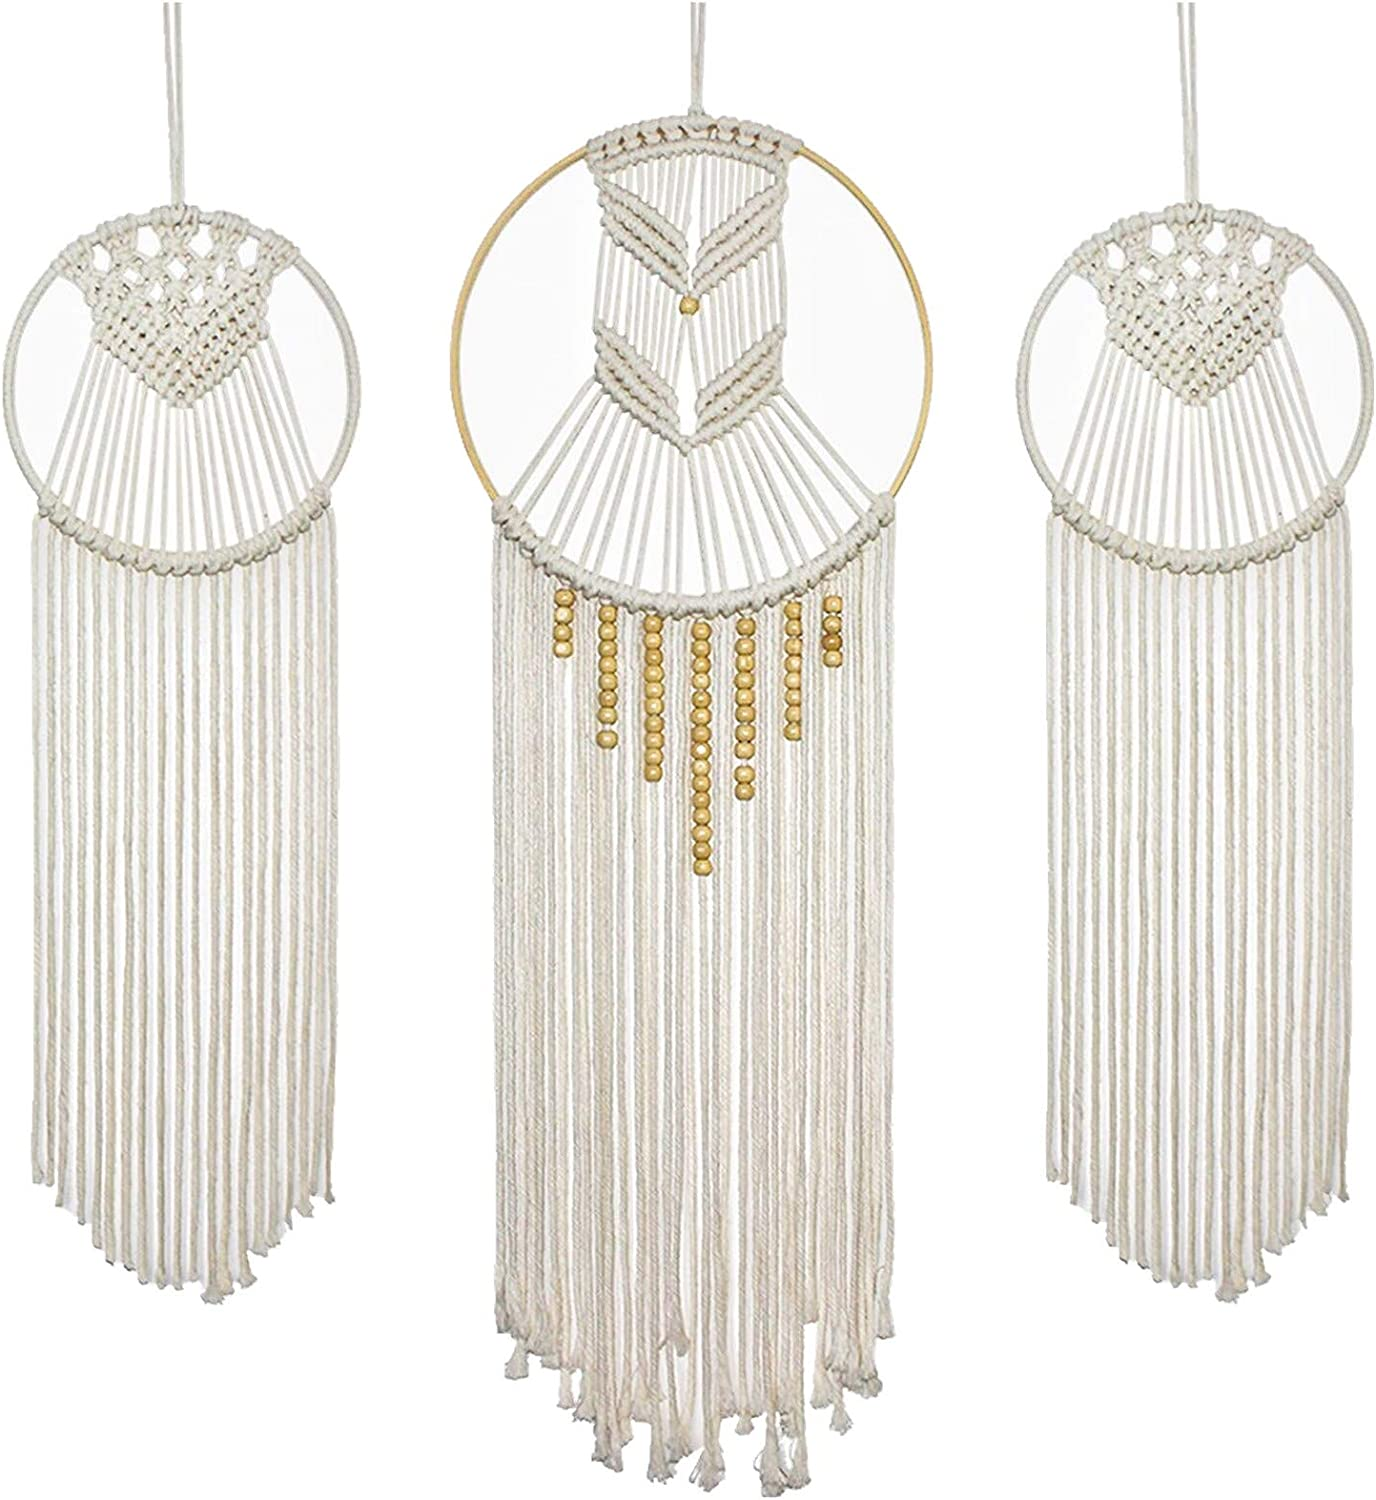 Rozwkeo 3 pcs Macrame Wall Hanging Boho Dream Catcher Wall Decor Large Handmade Tassels Bohemian Woven Tapestry Wall Art Decor for Bedroom Apartment Living Room Home Decoration Ornament Craft Gift